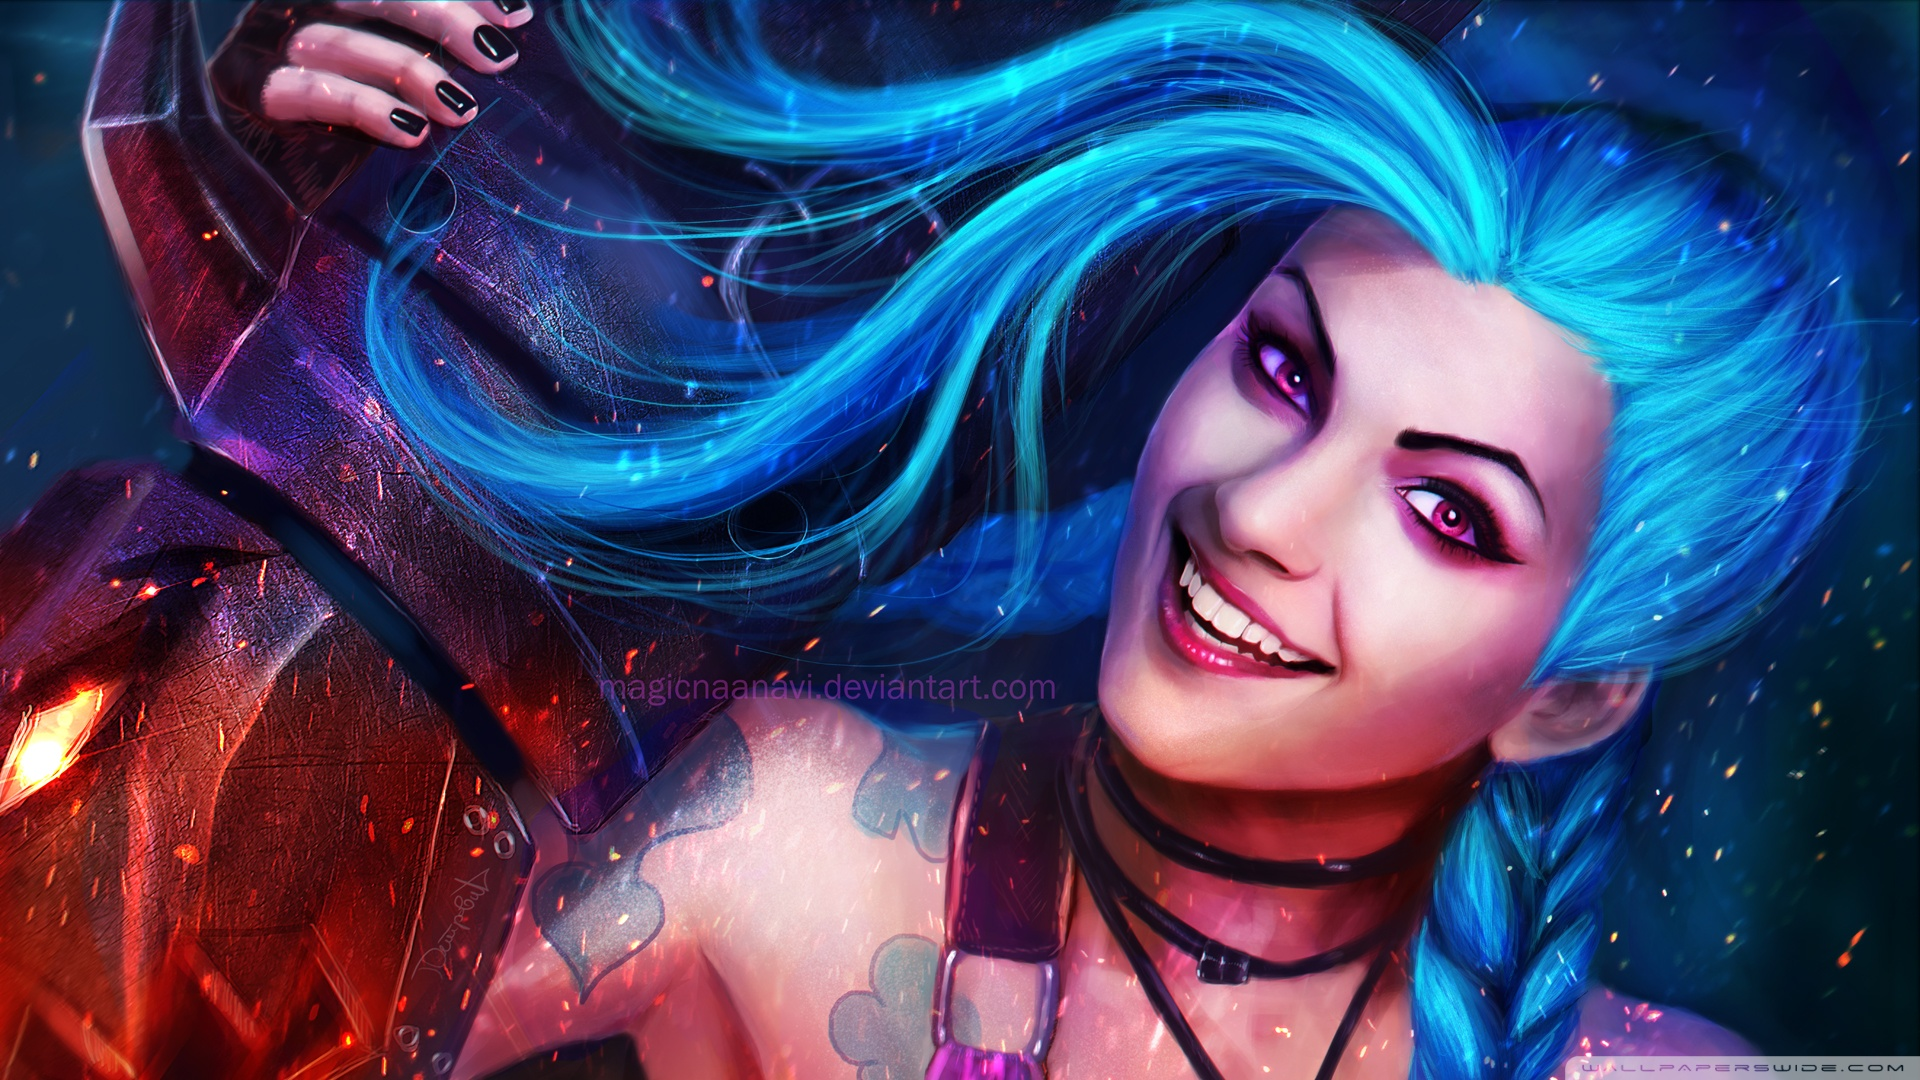 Jinx League Of Legends Wallpaper HD 1920x1080 4